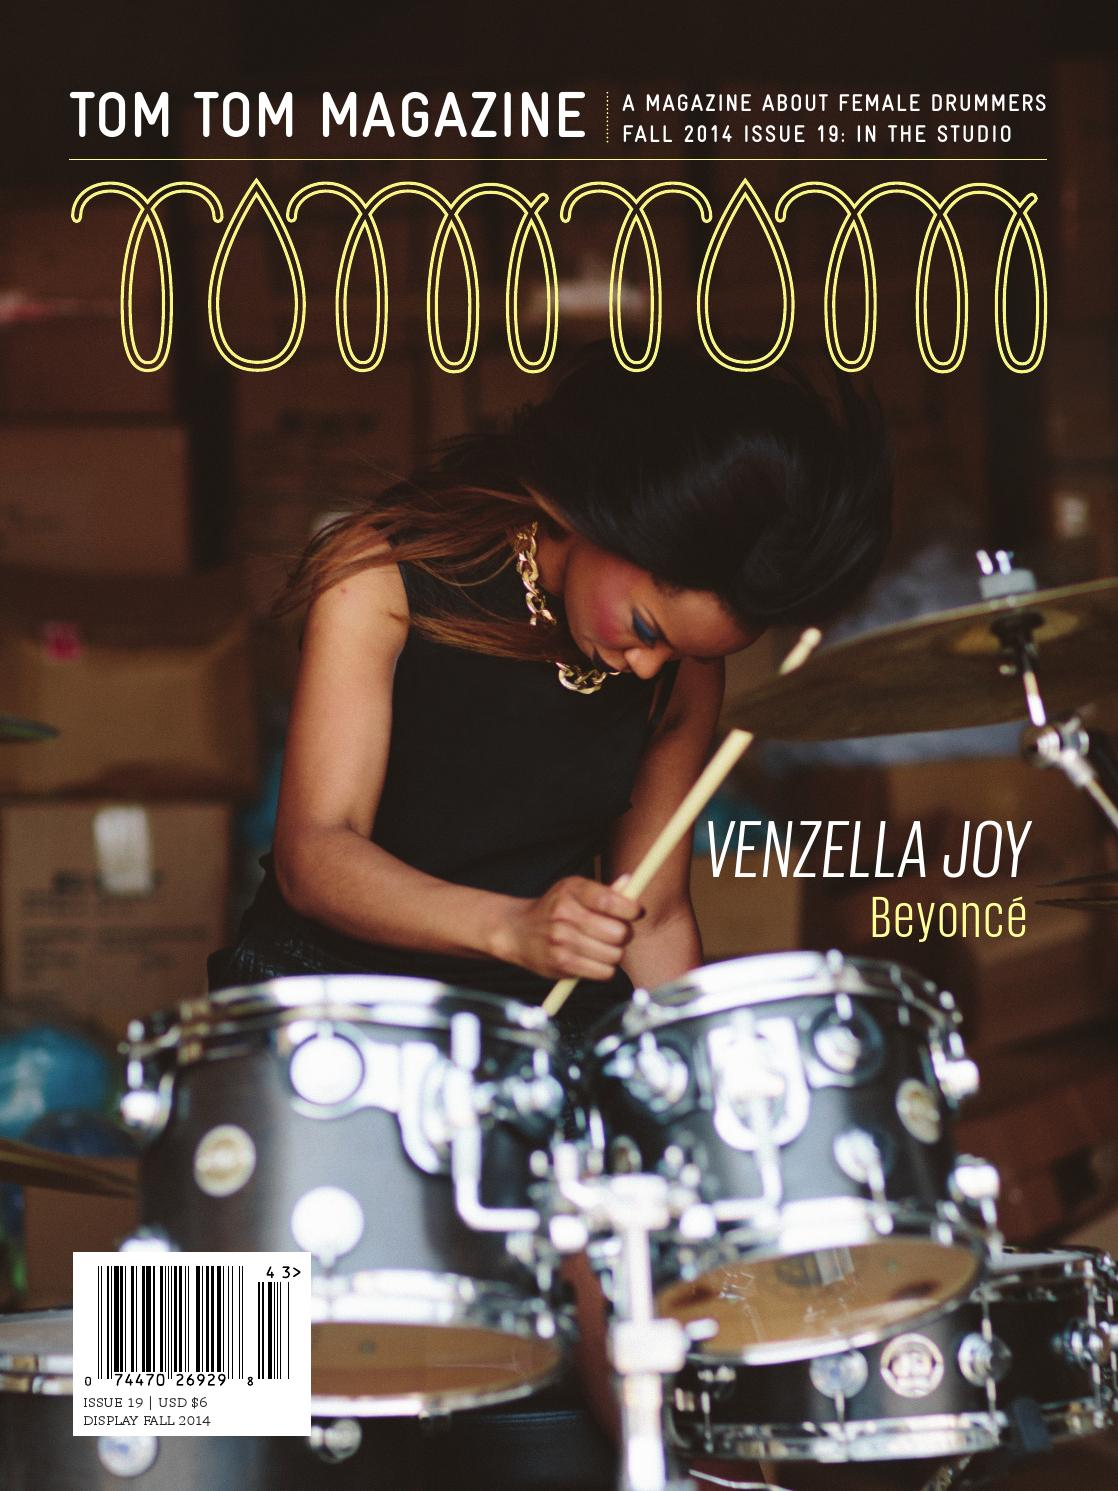 Tom Tom Magazine Issue In The Studio By Tom Tom Magazine Issuu - Street drummer uses nothing more than scrap metal to creating amazing techno beats